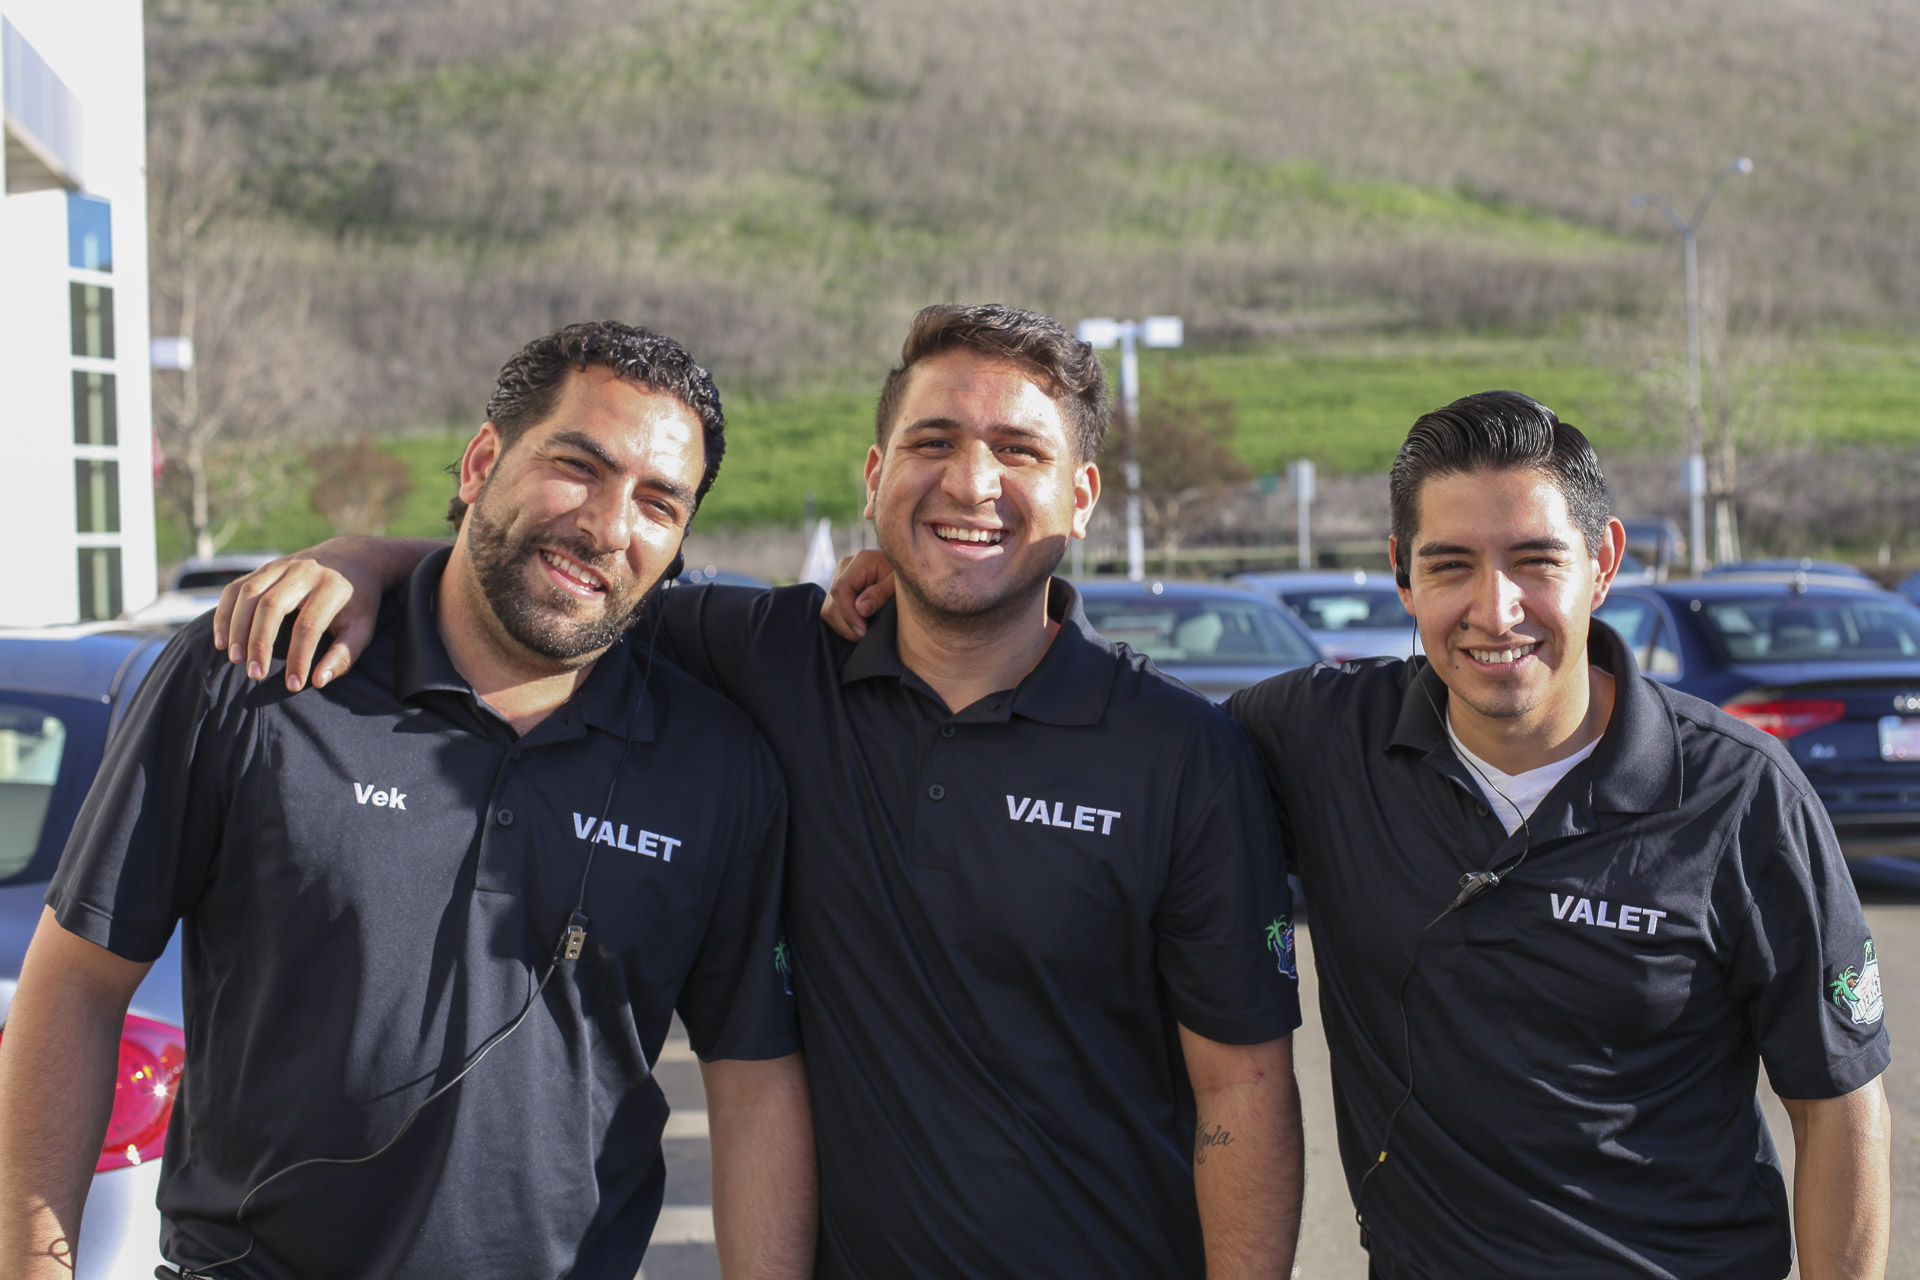 Three valets smiling